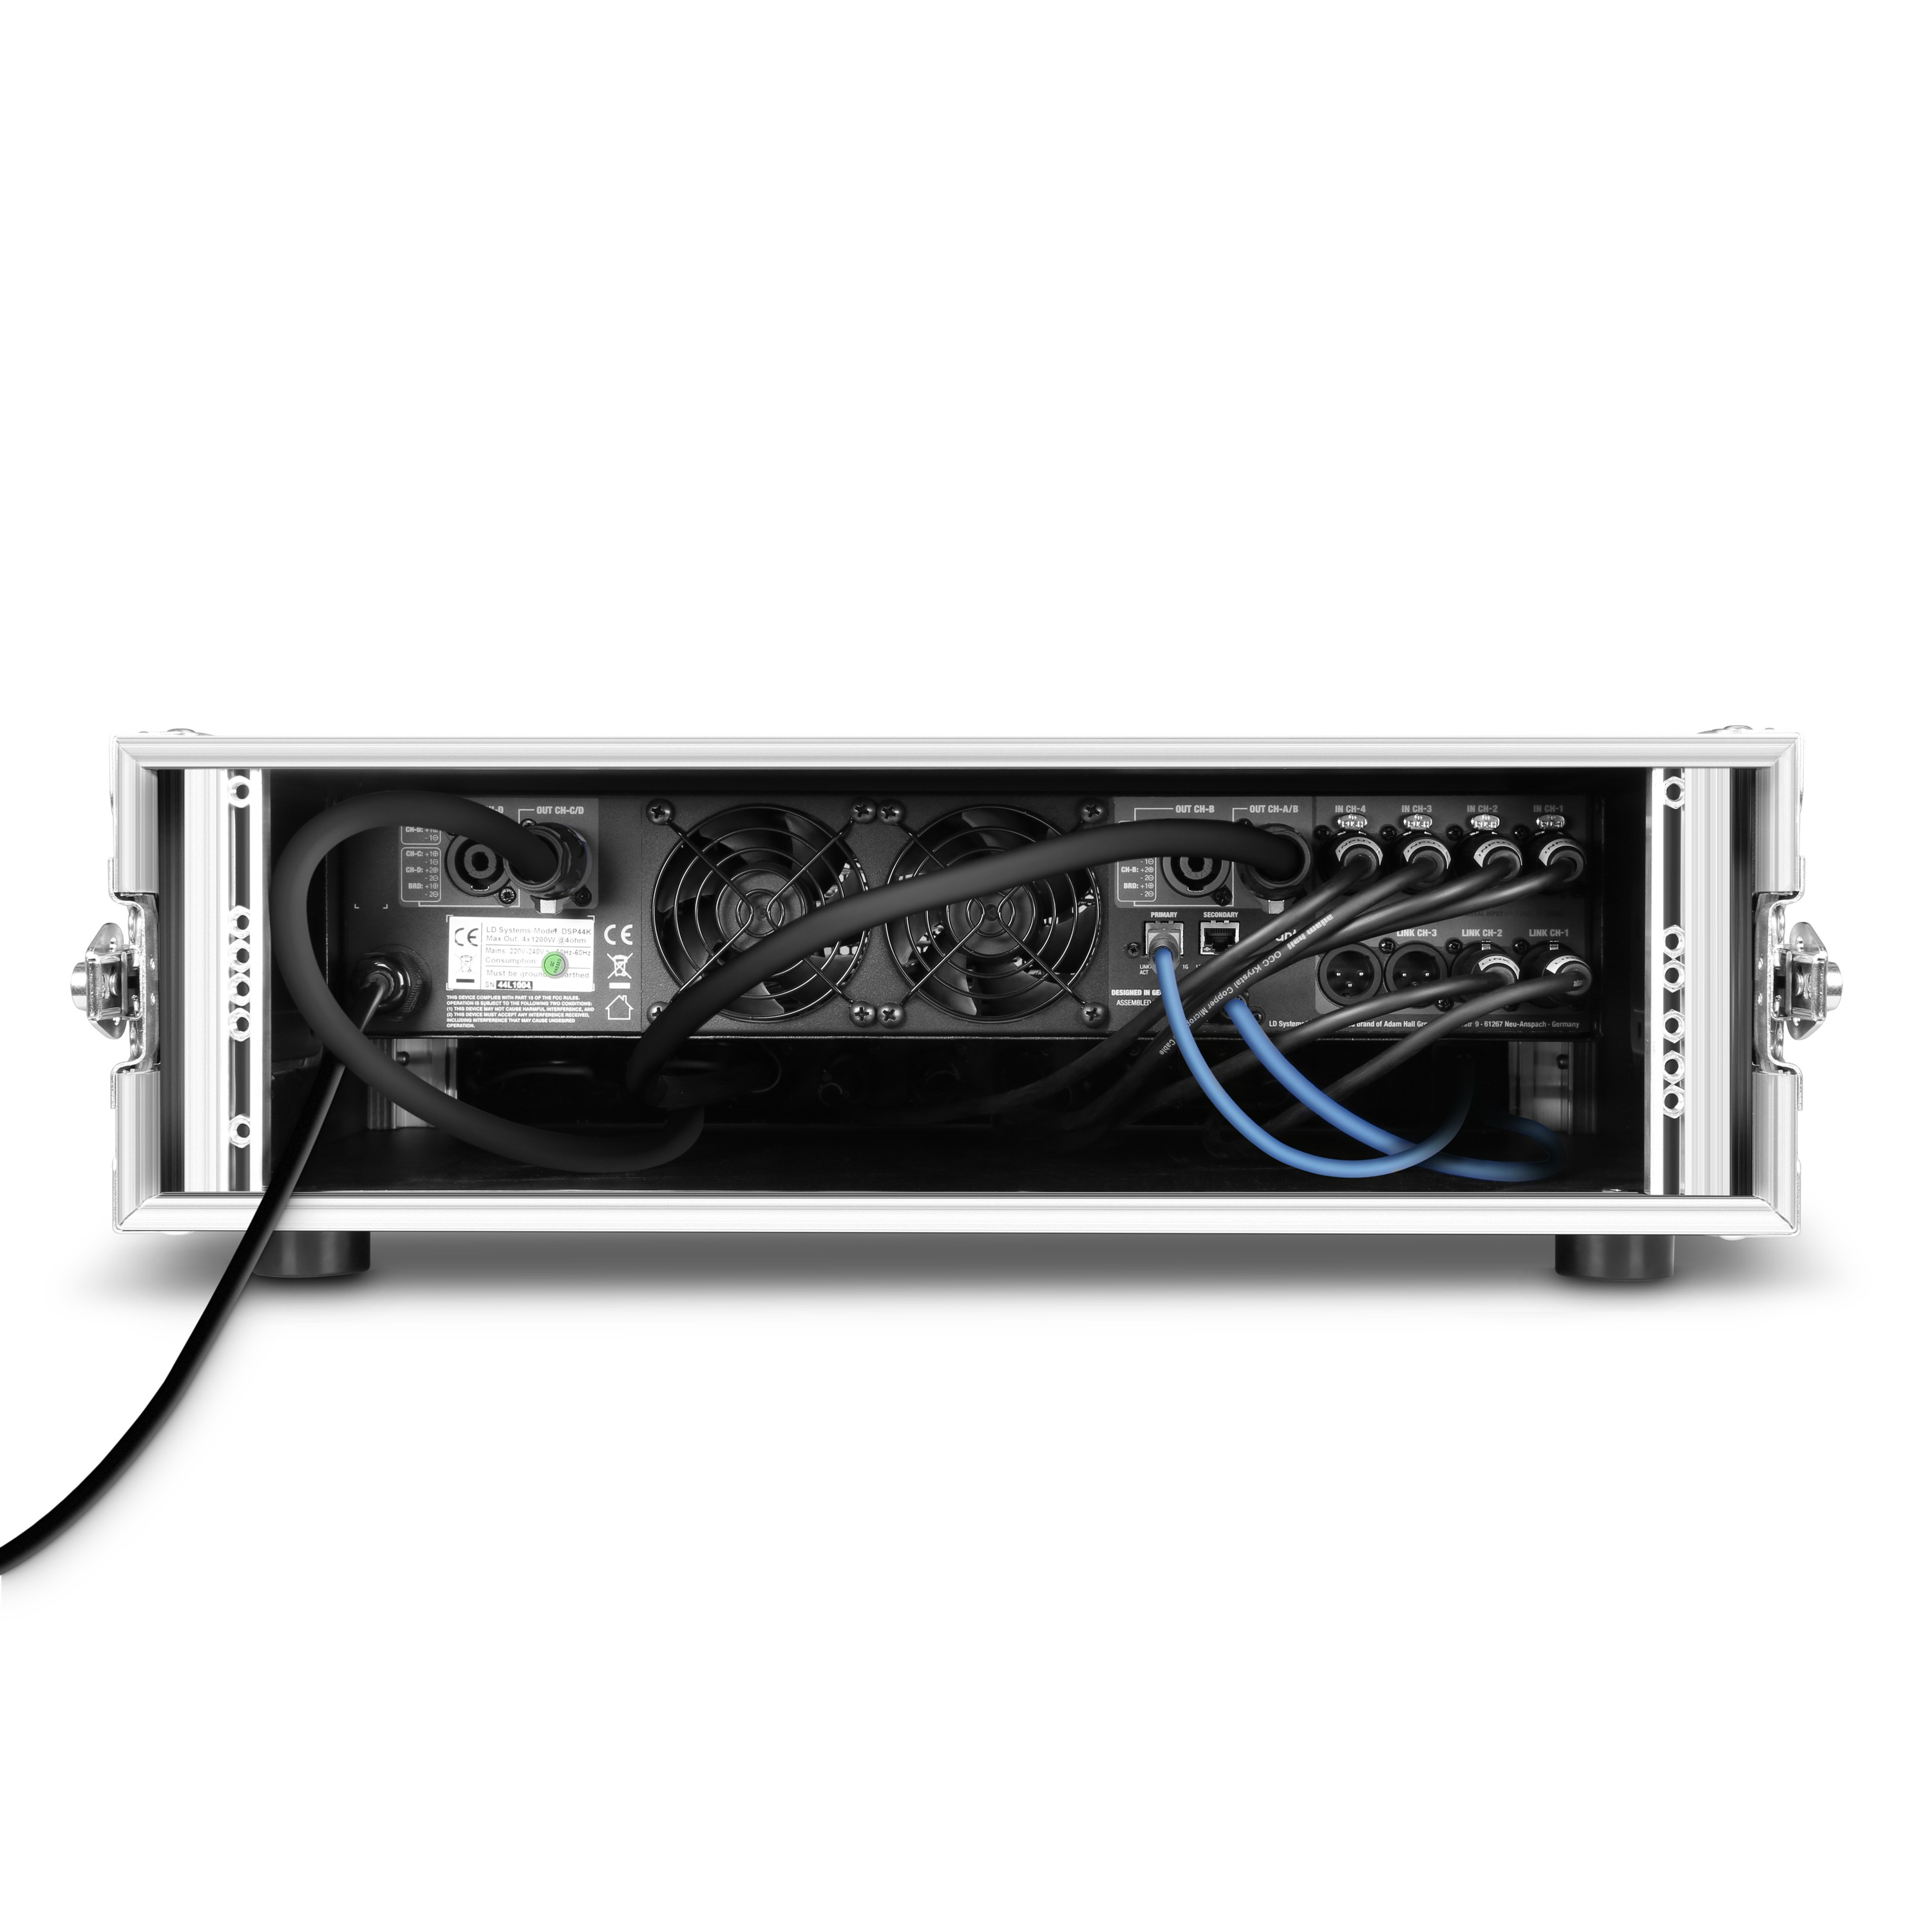 "DSP 44 K RACK 4-Channel Dante™ DSP Power Amplifier and Patchbay in 19""Rack Case"